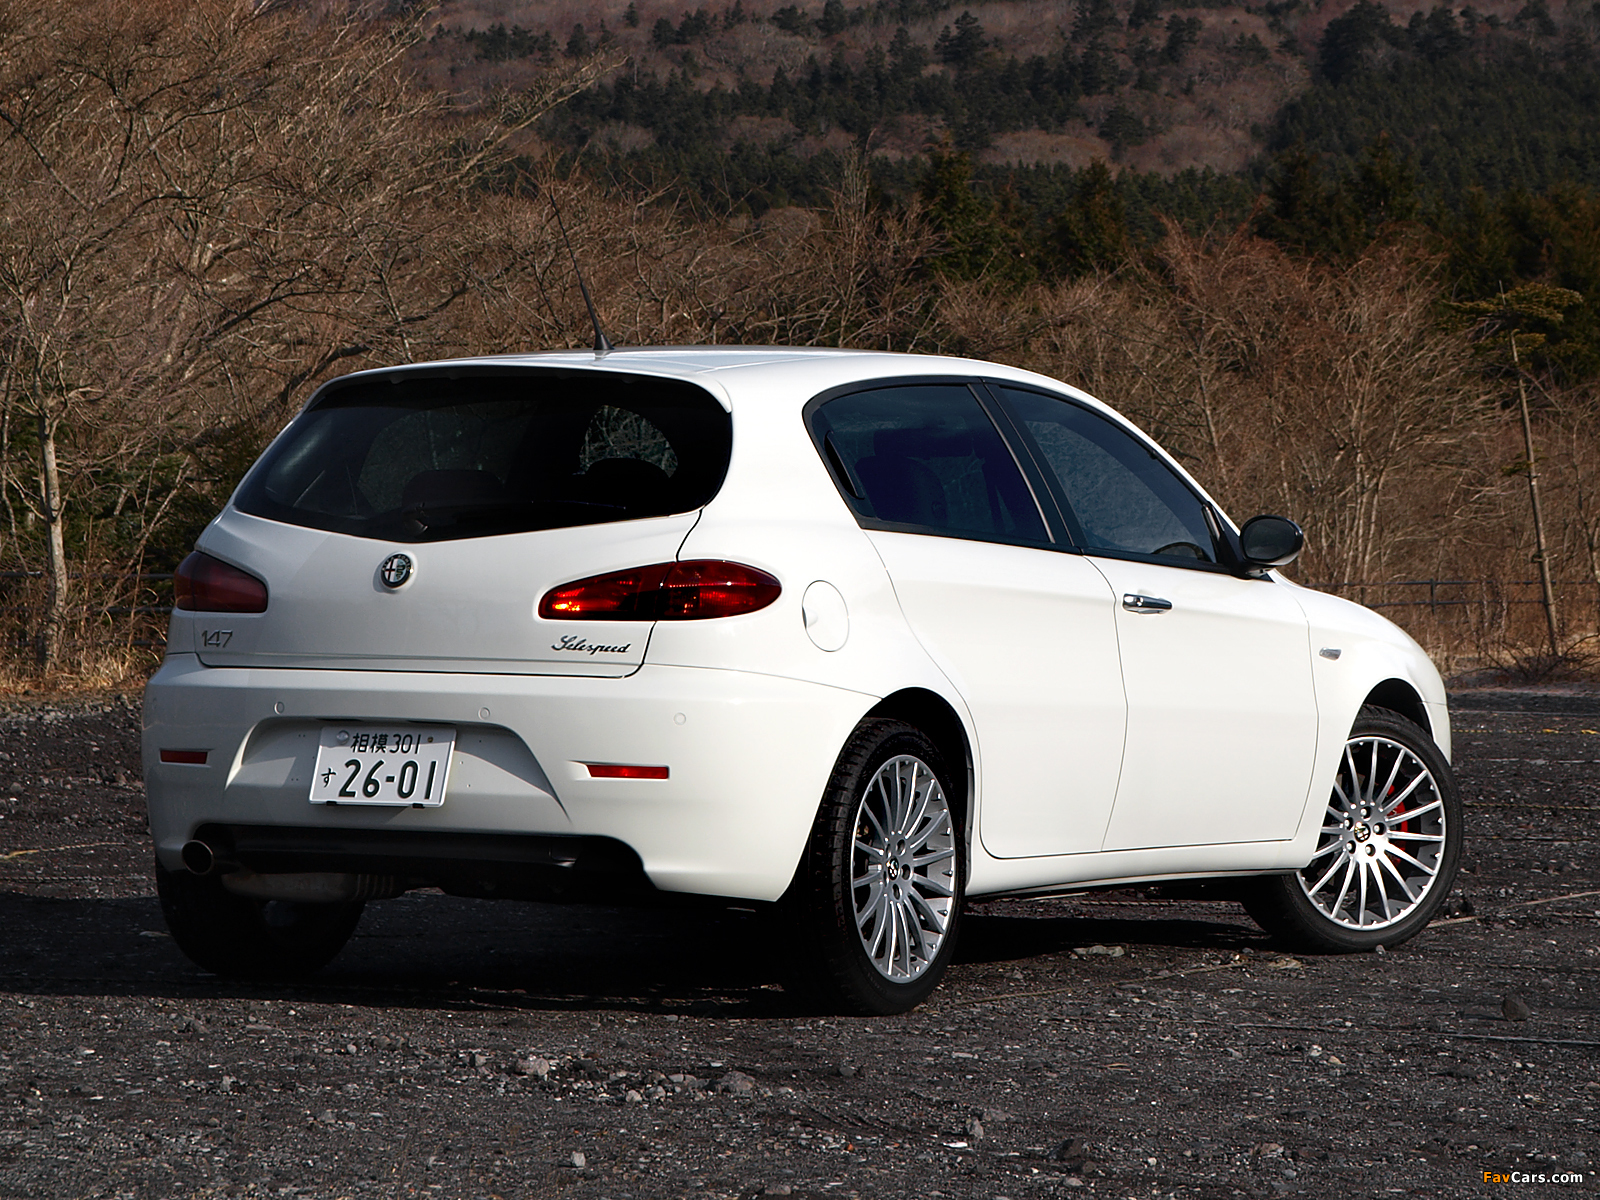 Alfa Romeo 147 White Edition 937b 2008 Wallpapers